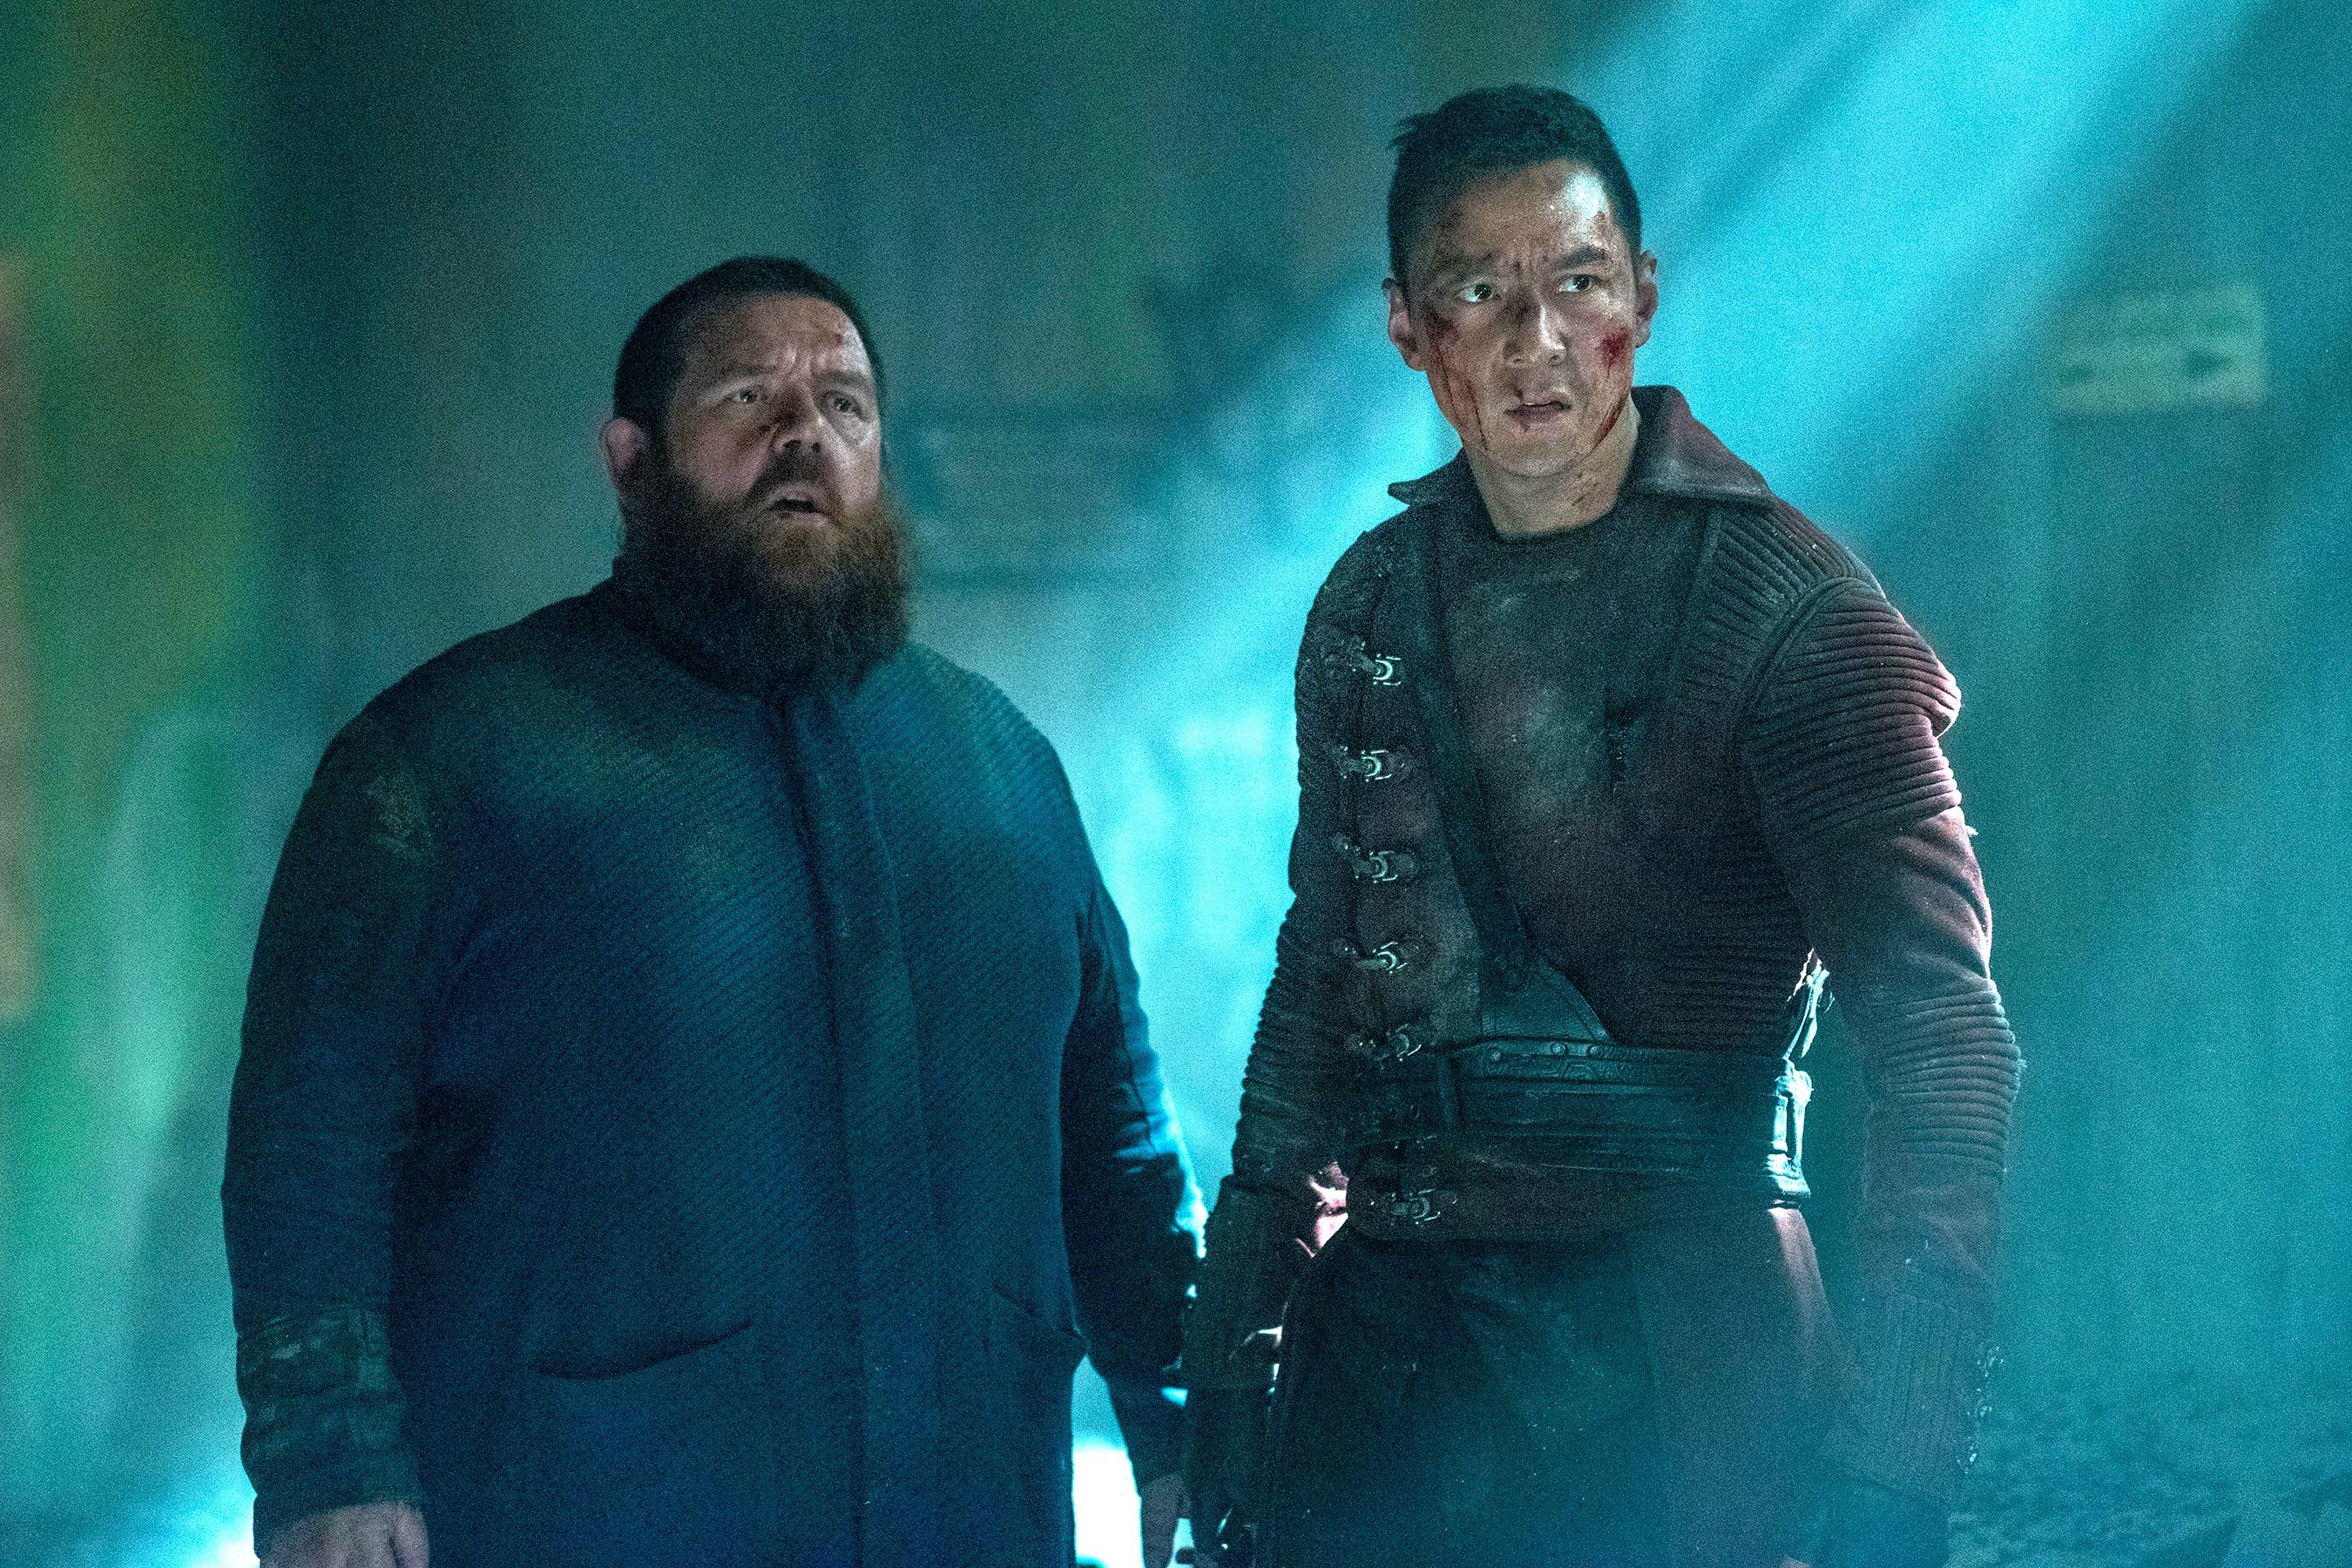 Late to the Party: Into the Badlands